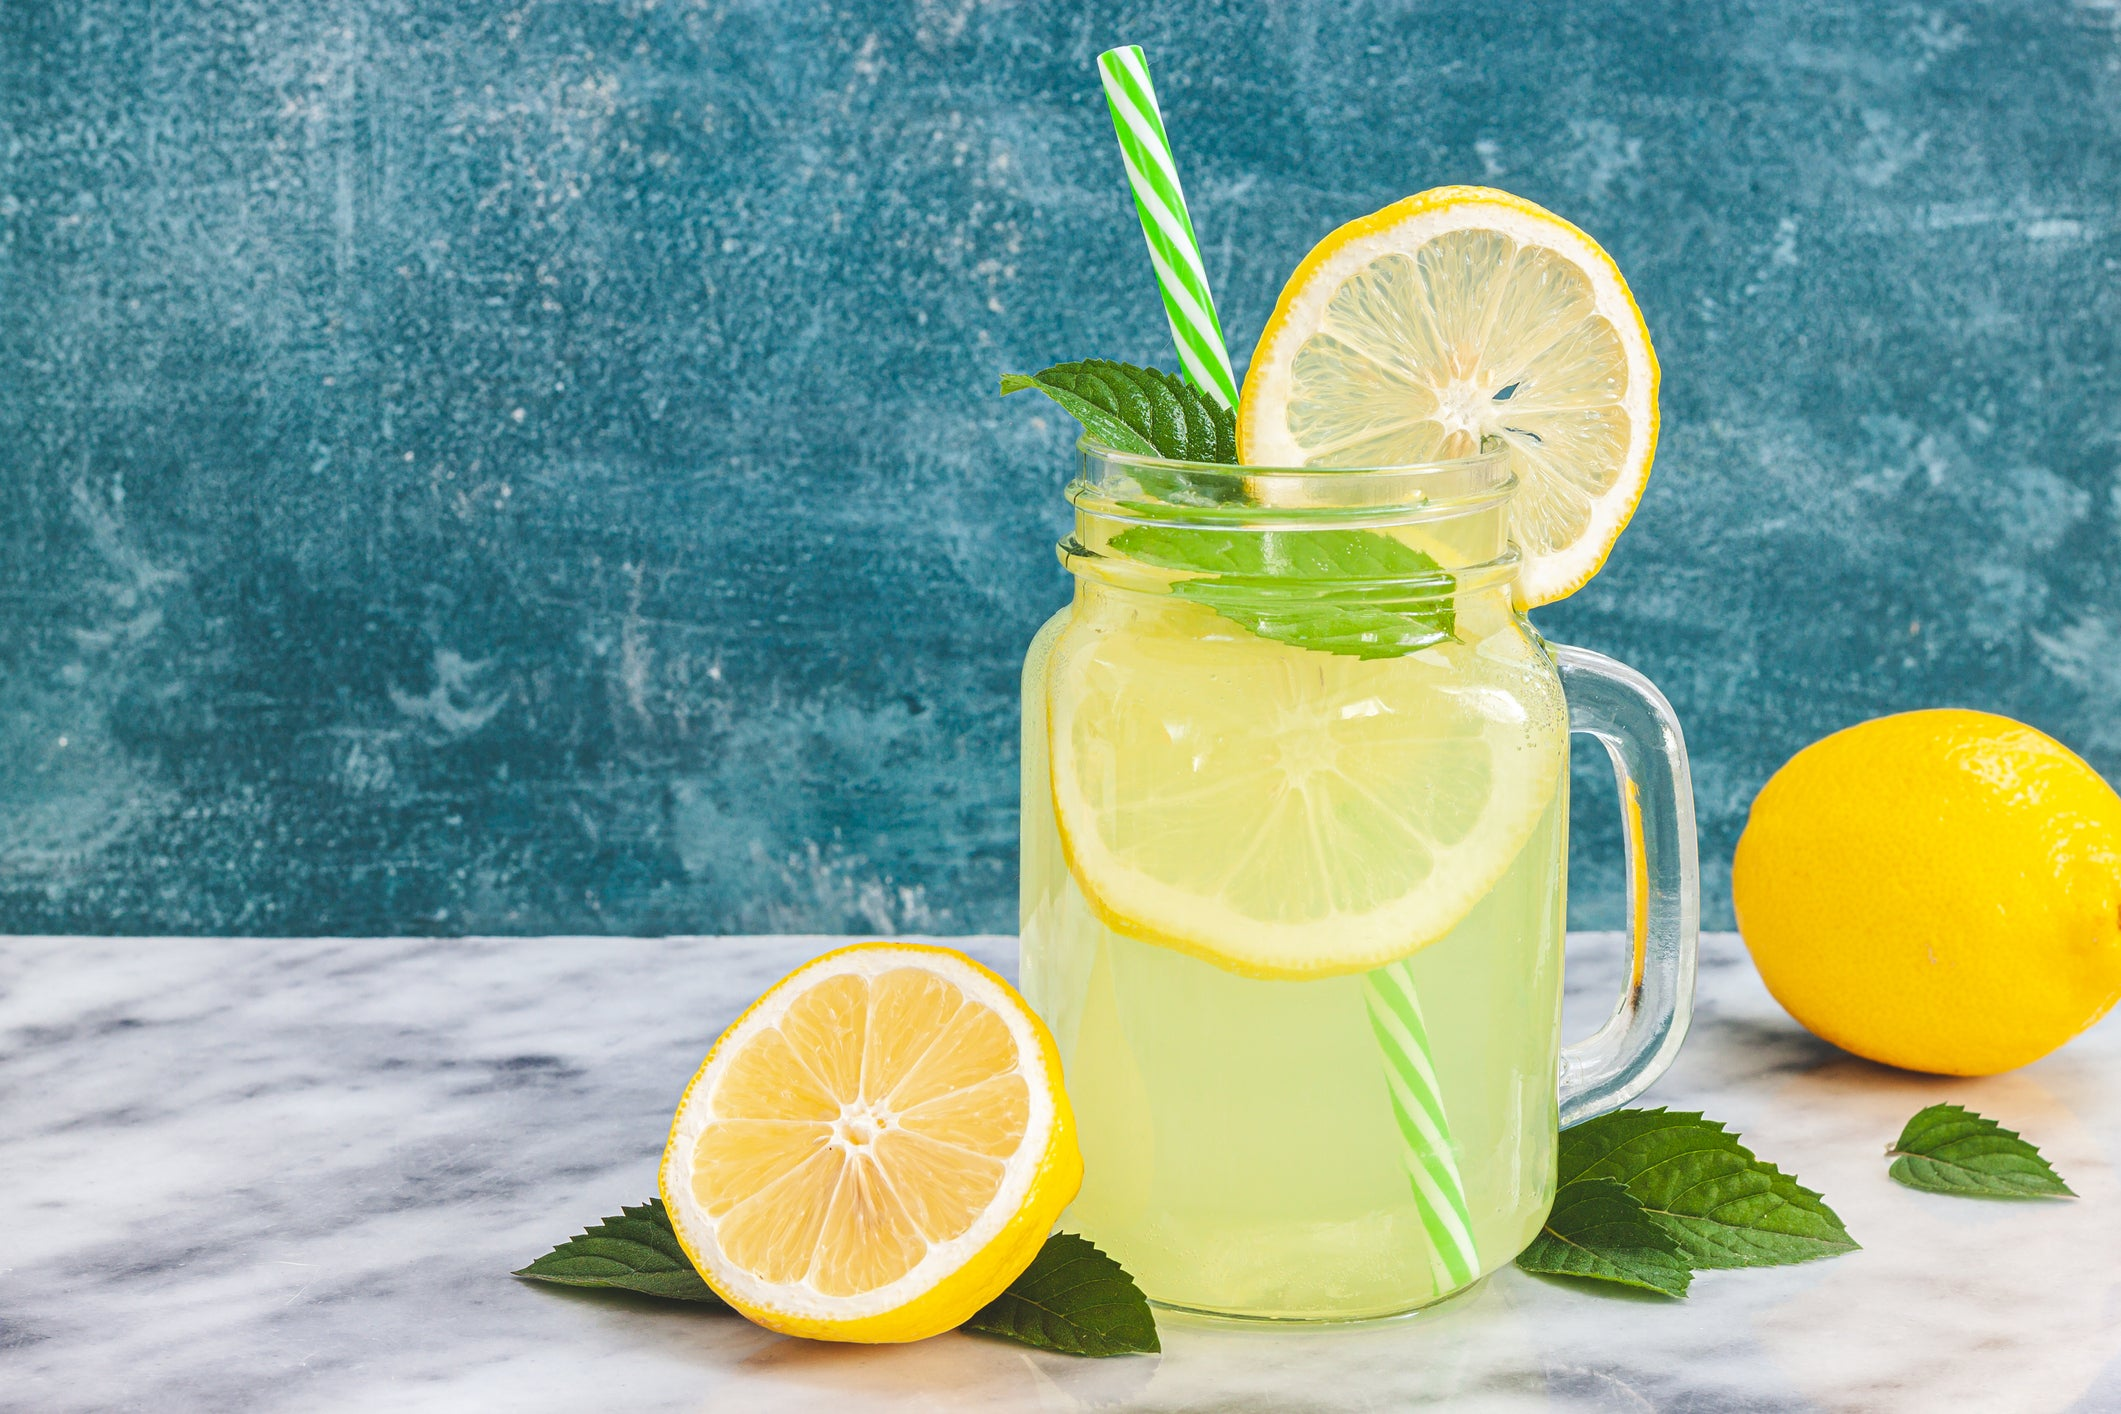 Why Is Lemonade Stock Higher Friday While the Market Is Dropping?